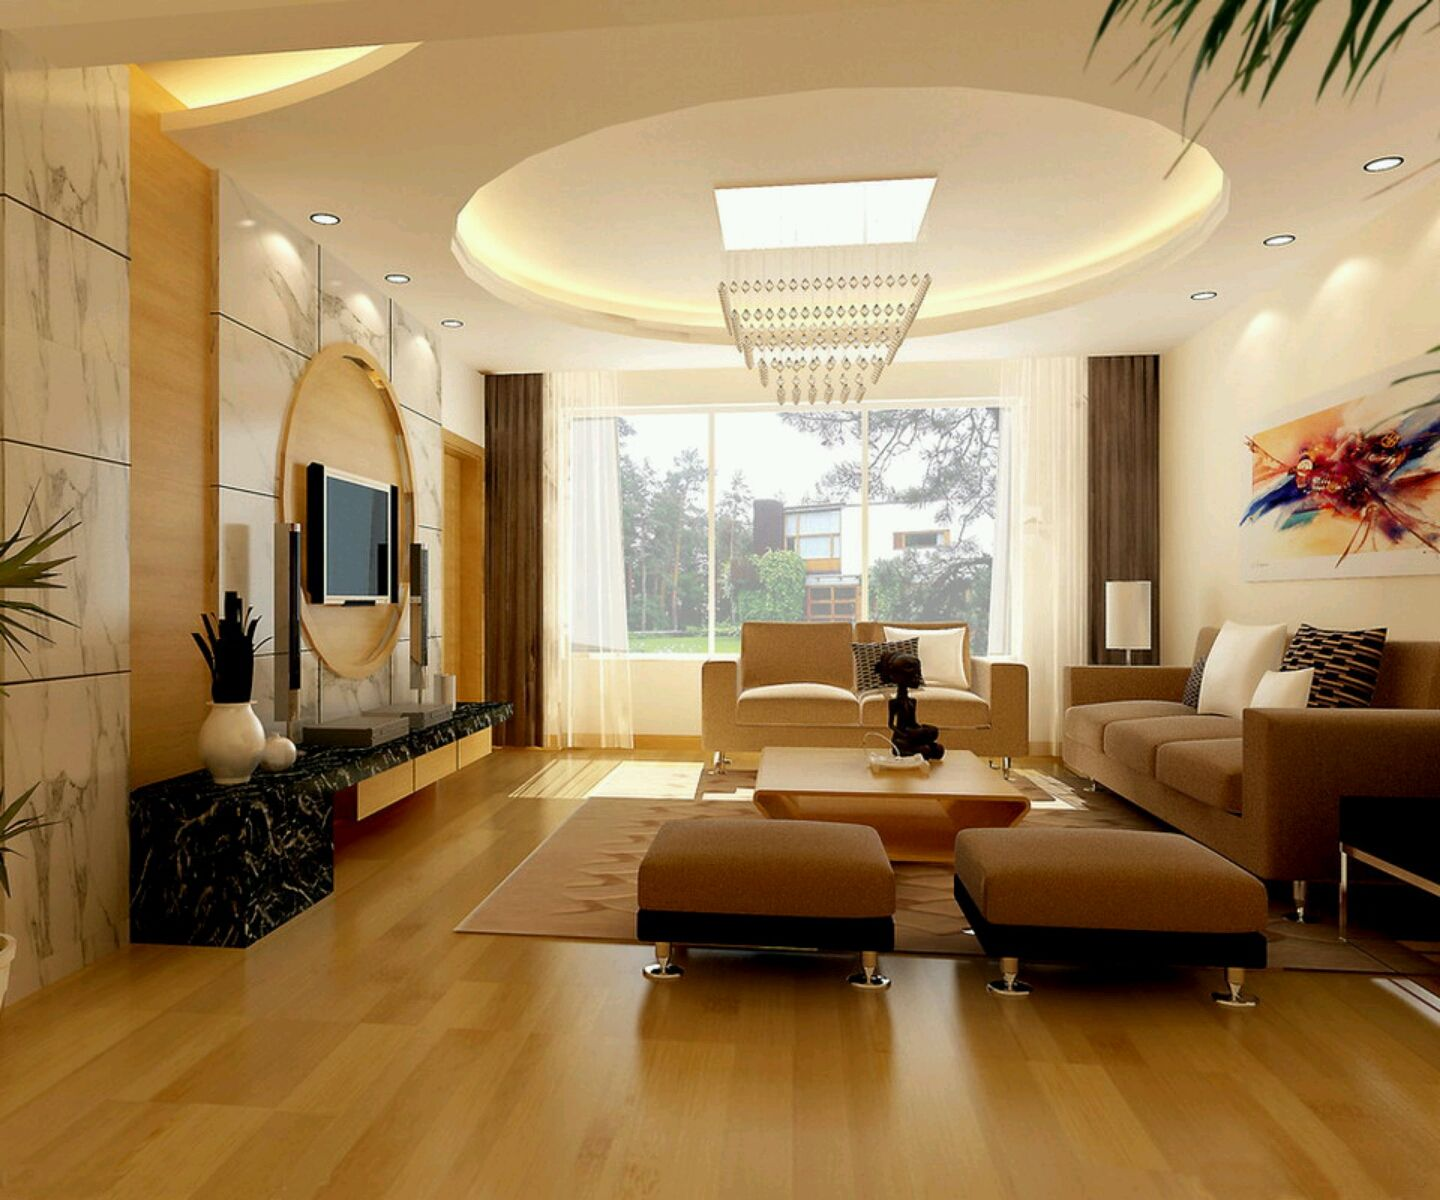 Ceiling Designs for Your Living Room | Pop ceiling design, Living ...